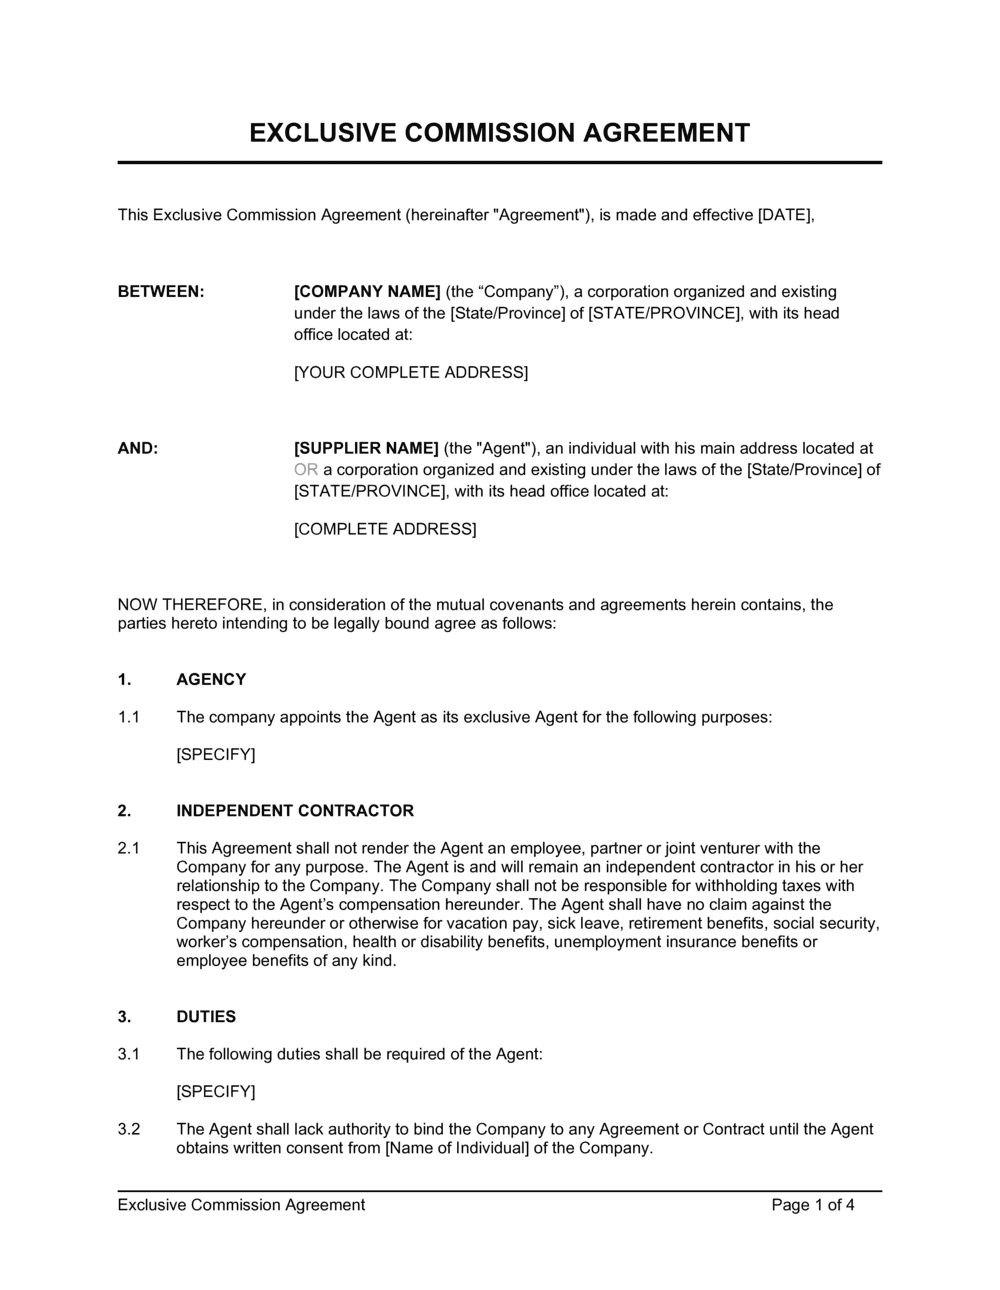 Business-in-a-Box's Exclusive Commission Agreement Template